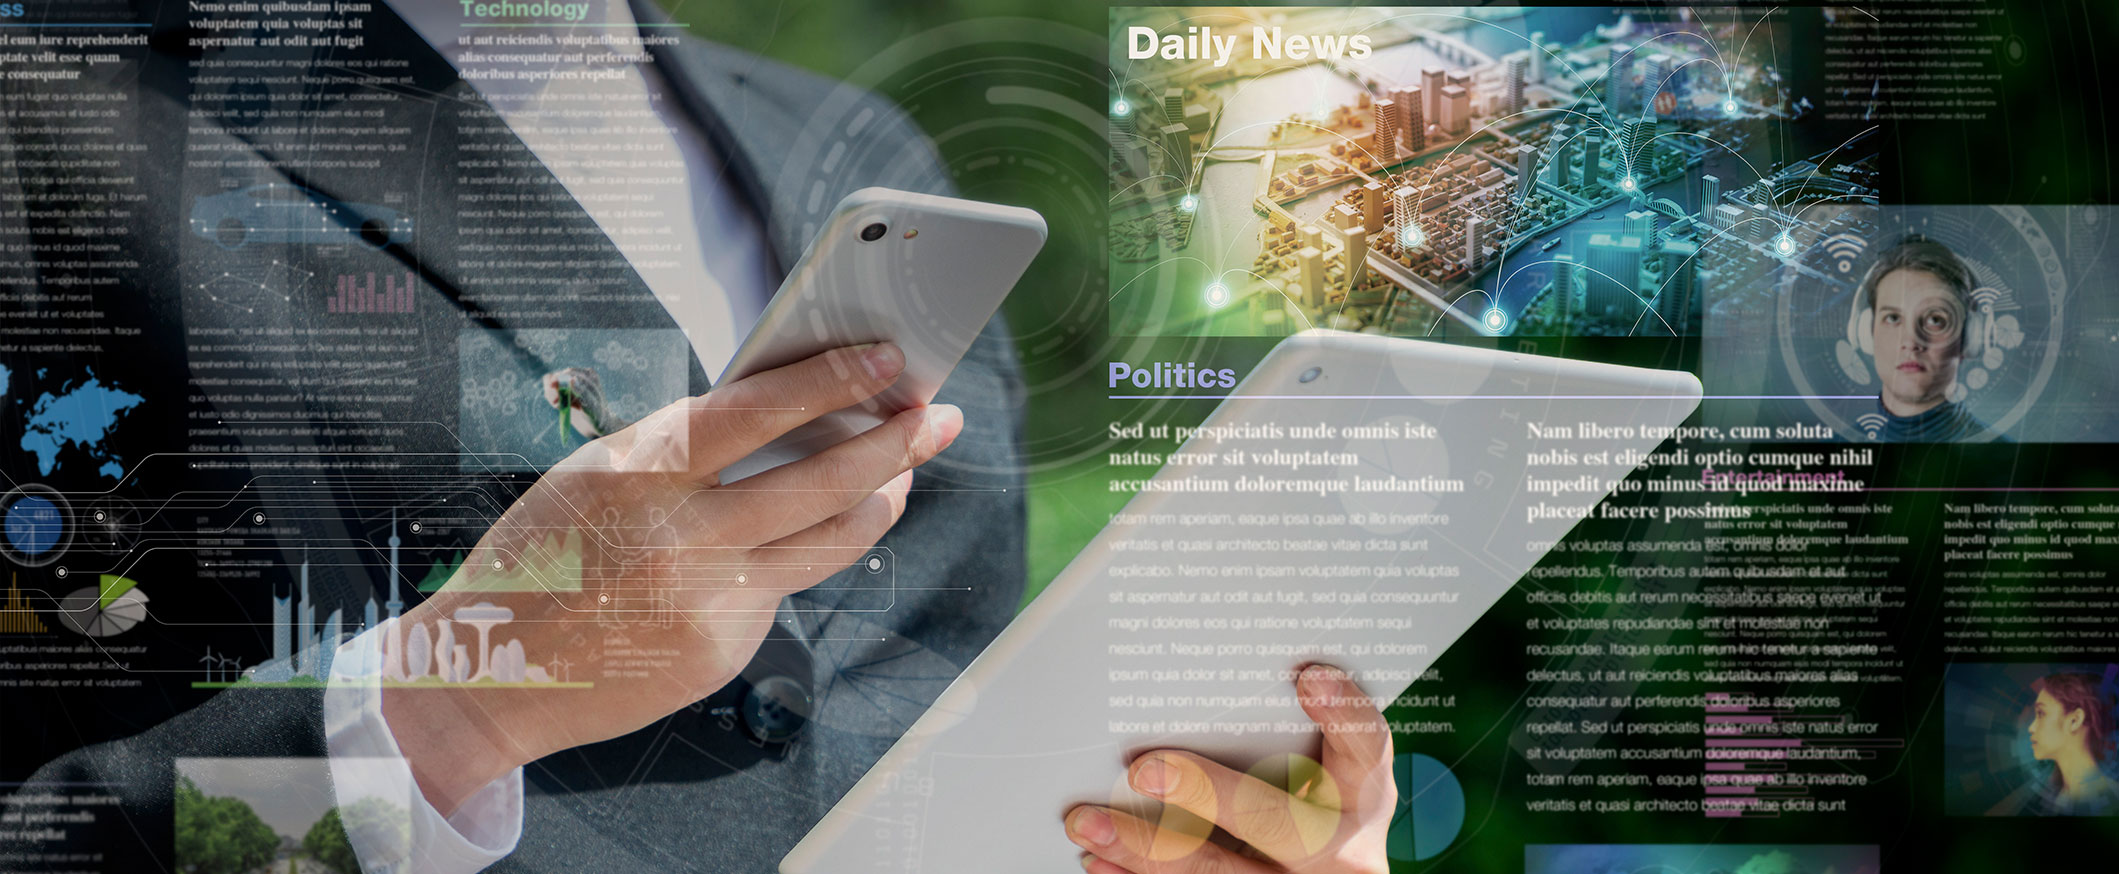 Technology and News